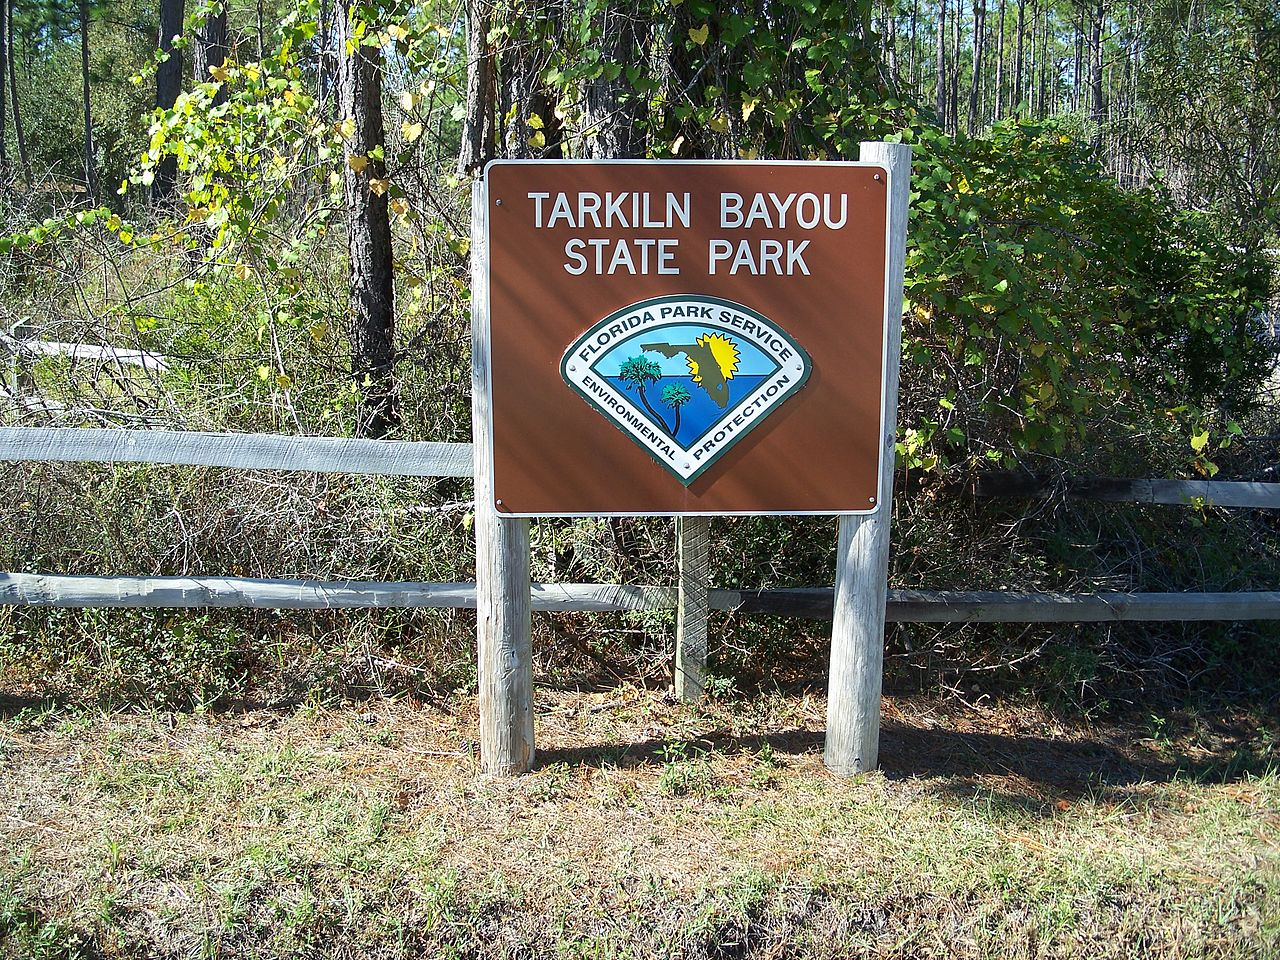 Attractive Destination To See in Pensacola-Tarkiln Bayou Preserve State Park